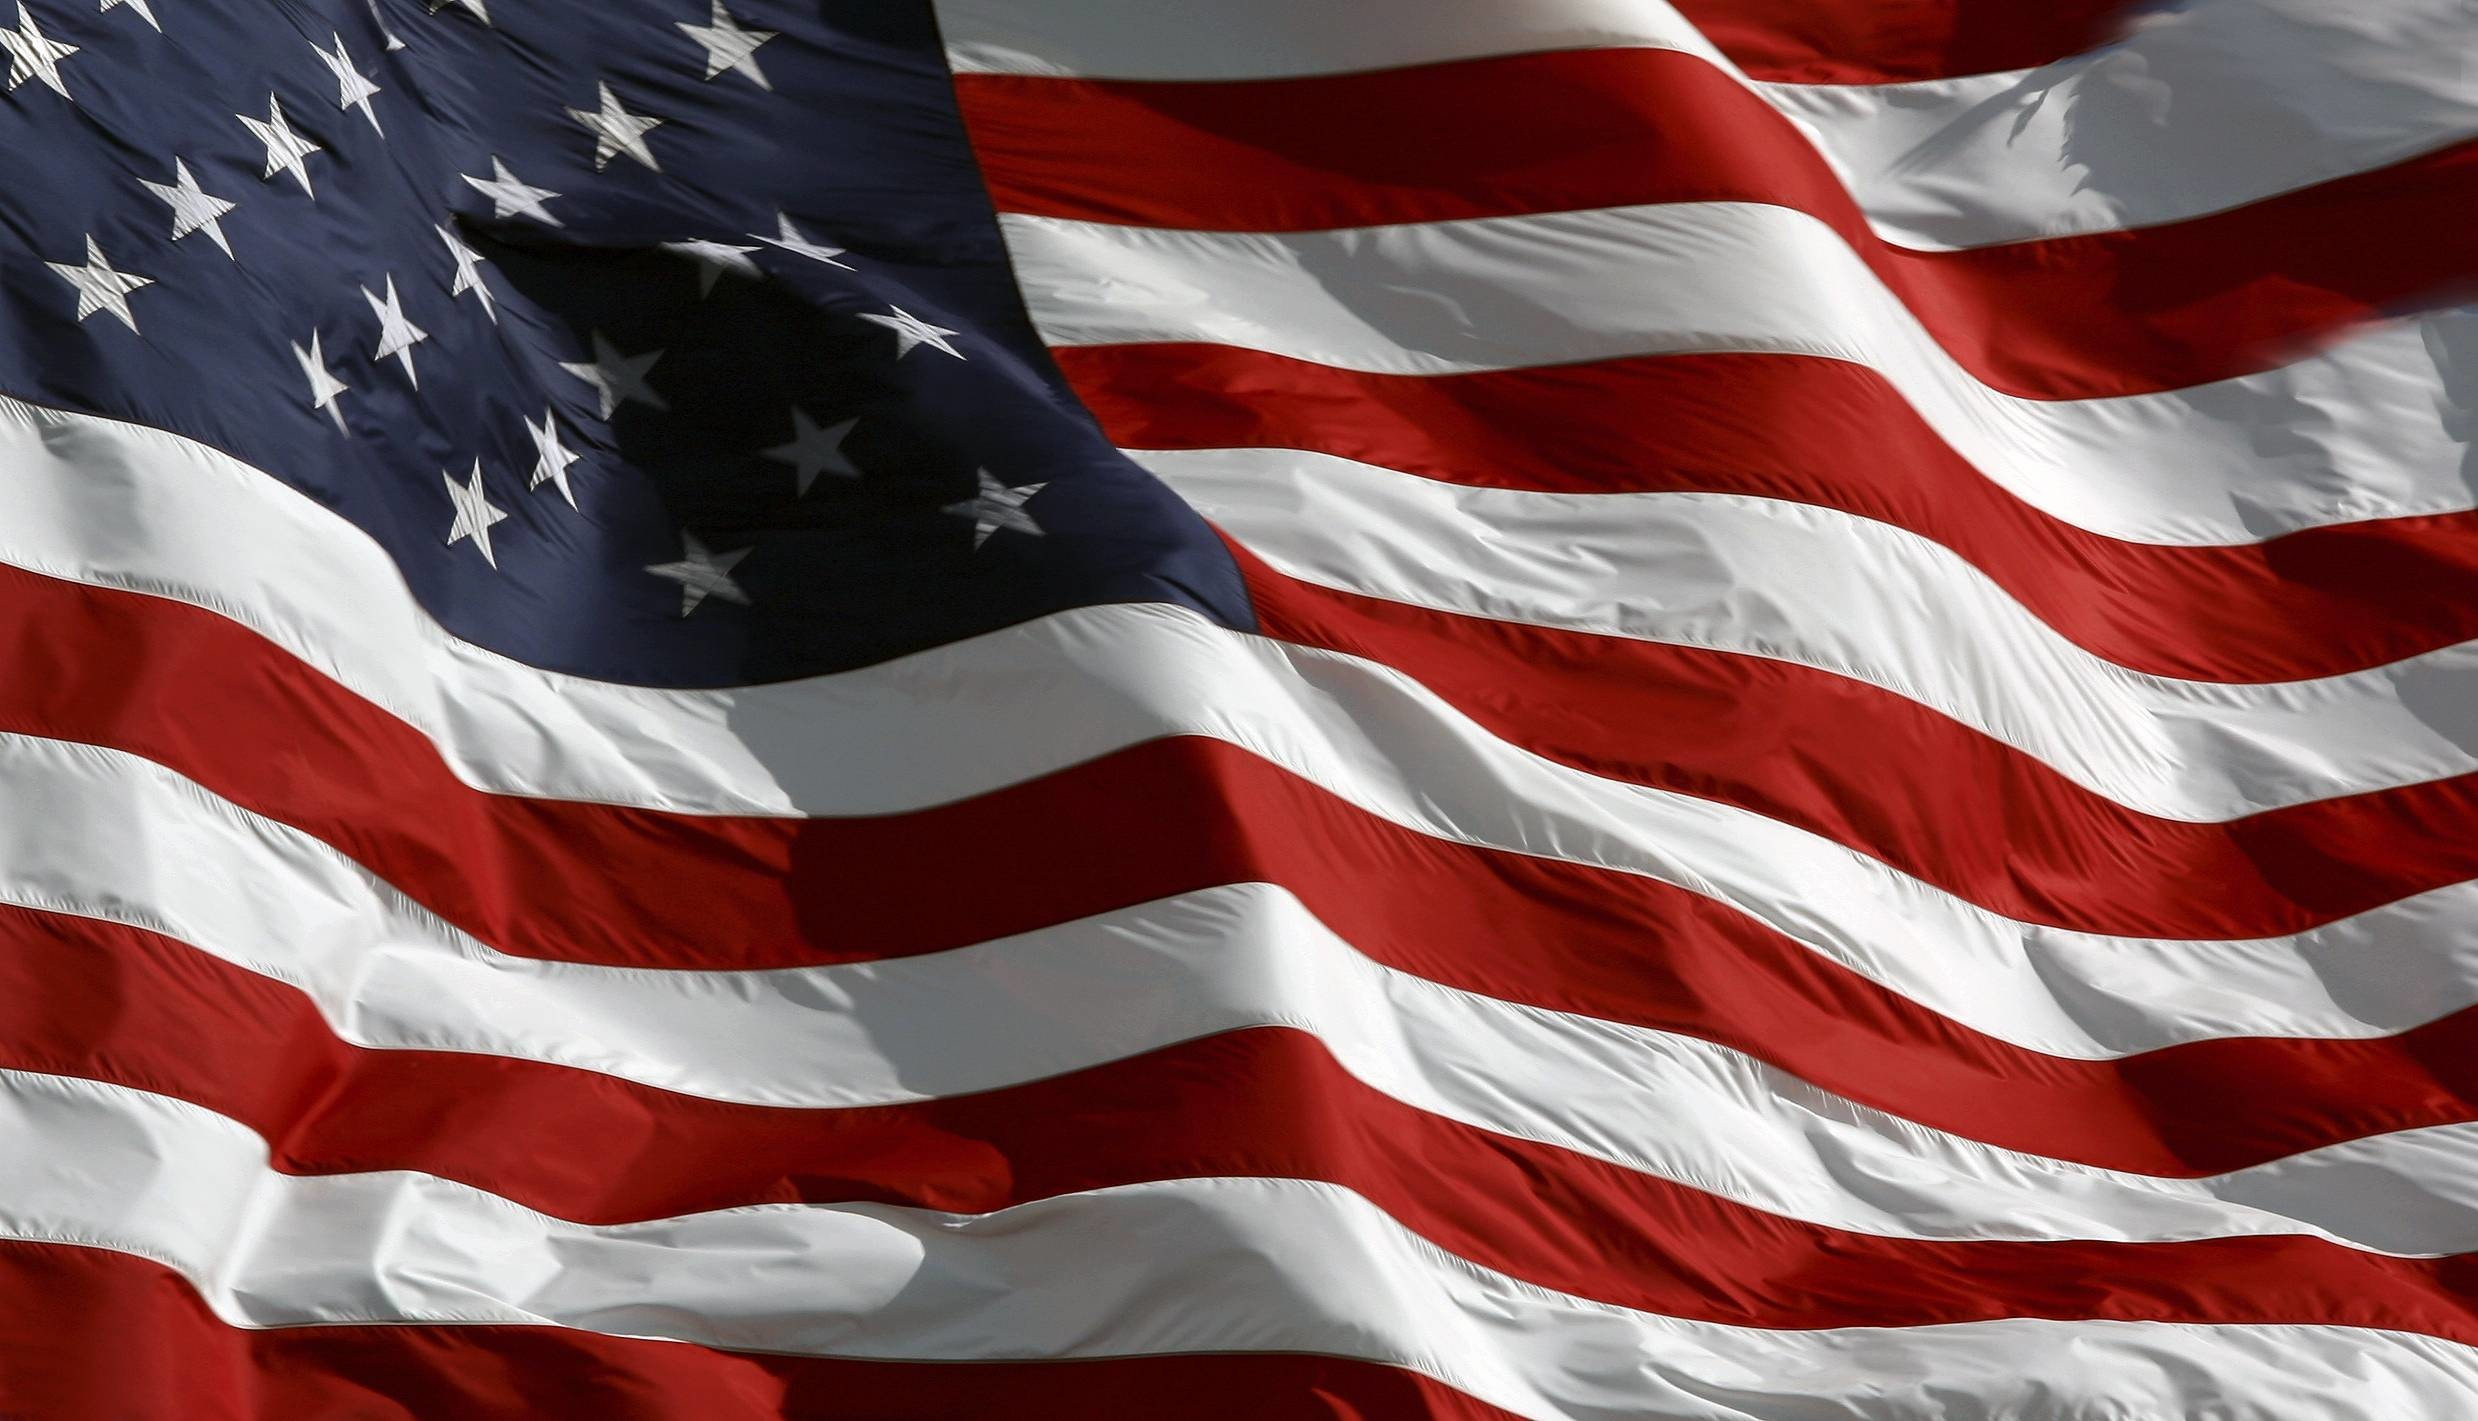 2478x1421 American Flag Background Wallpaper | Wallpaper Download